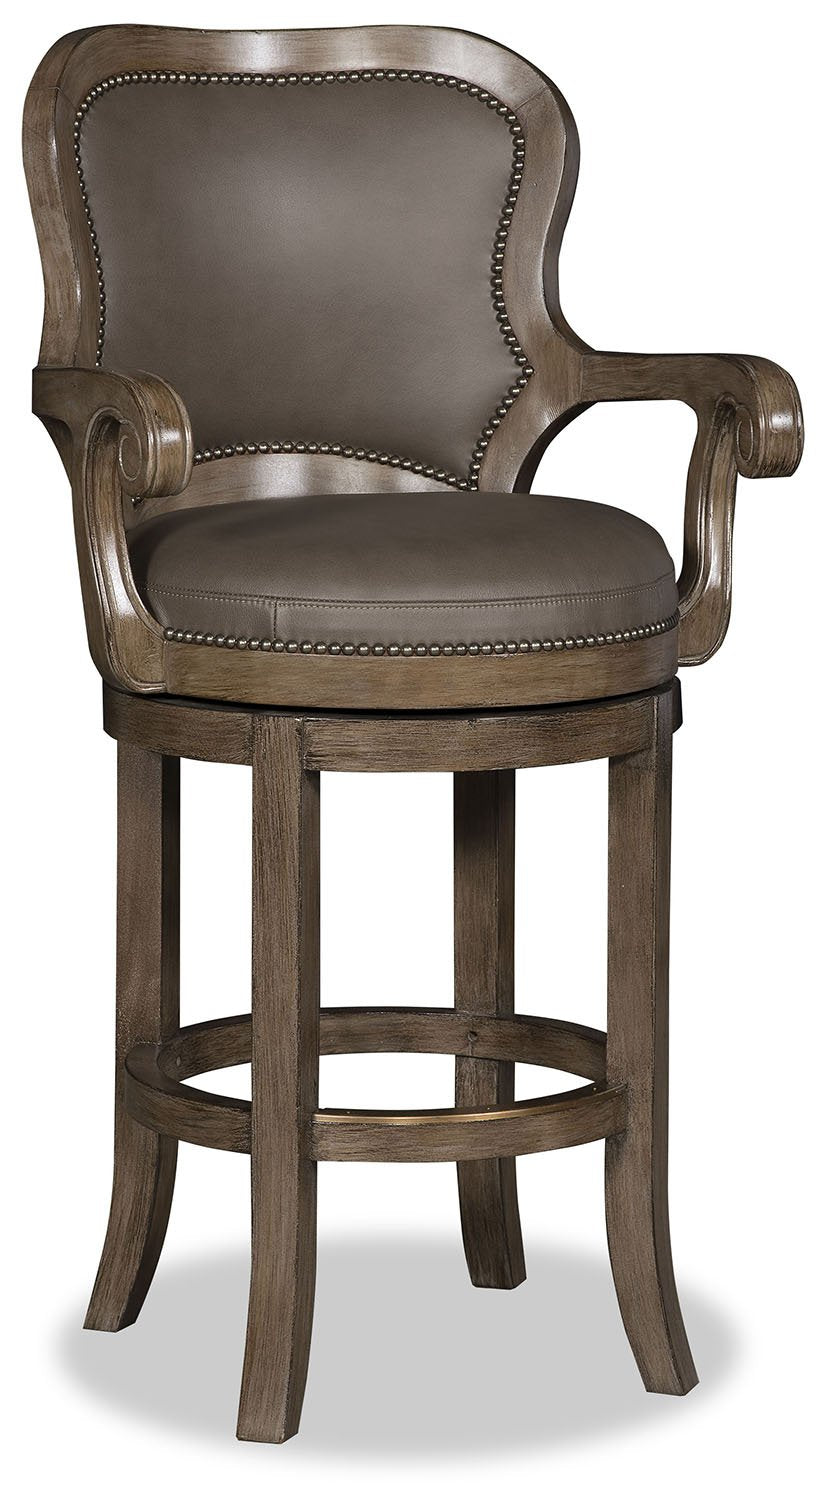 Terrific Nate Leather Swivel Barstool Smooth Chocolate Theyellowbook Wood Chair Design Ideas Theyellowbookinfo